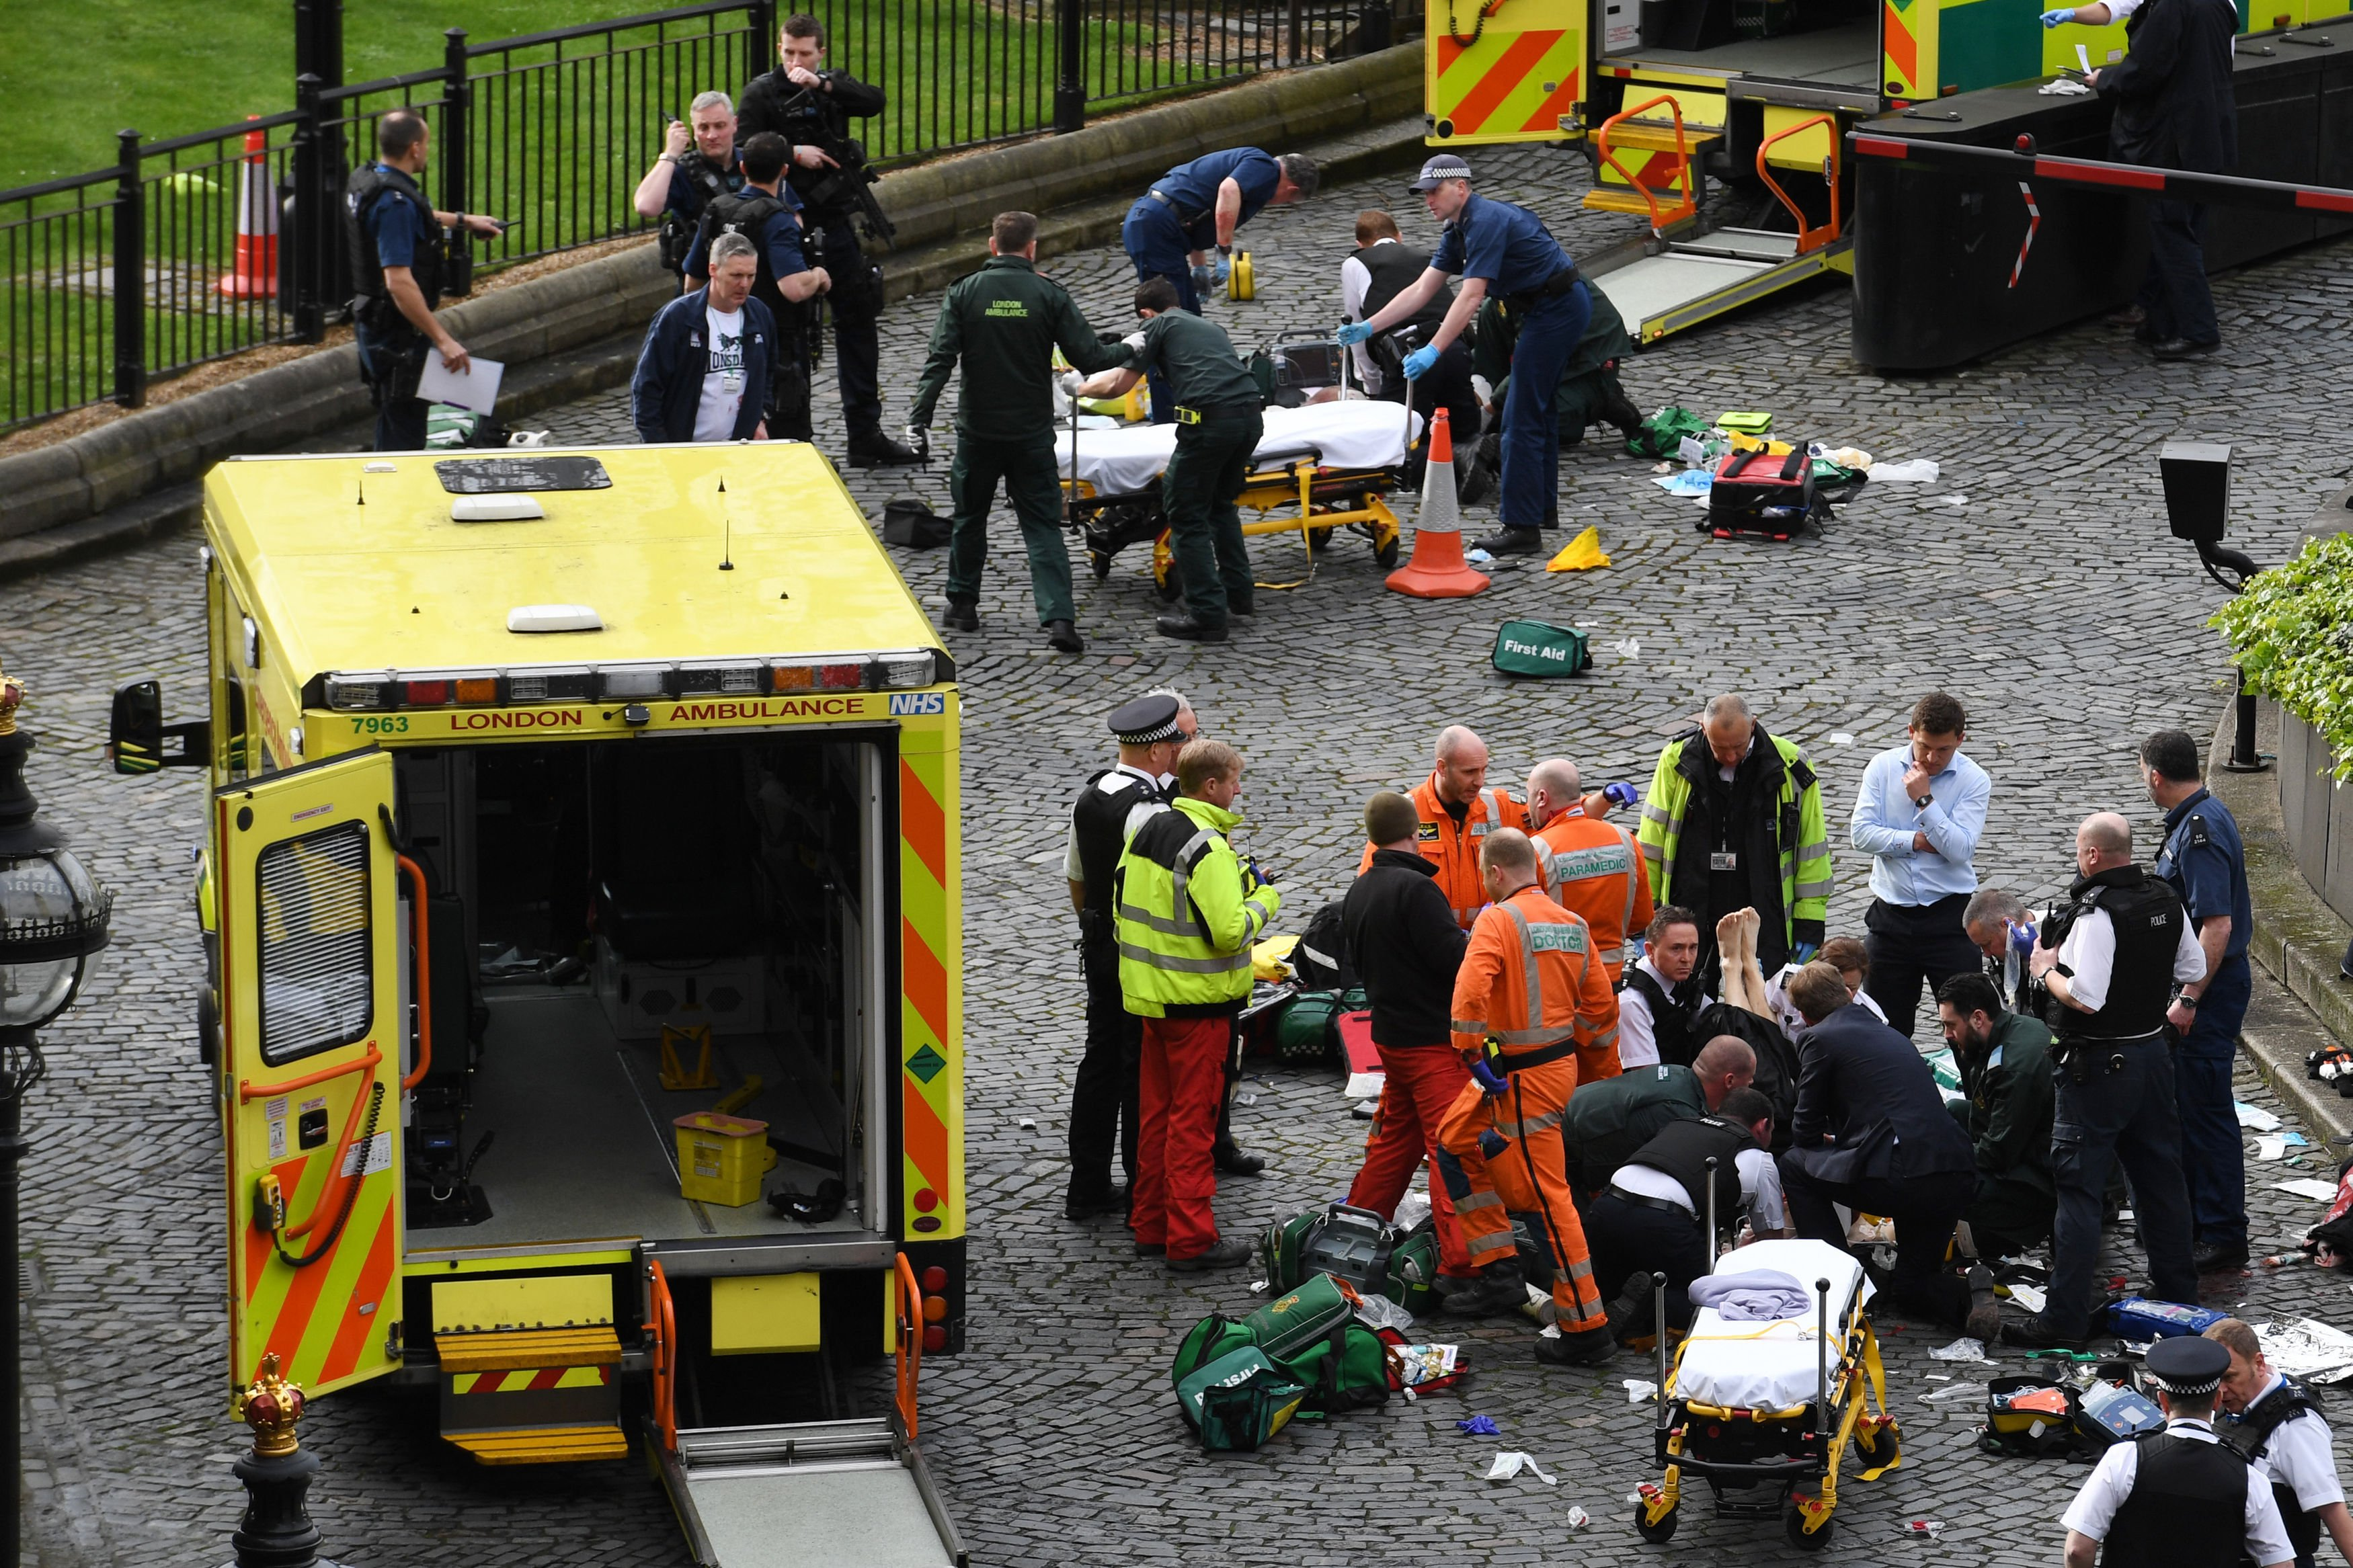 Emergency services at the scene outside the Palace of Westminster after a policeman was stabbed and the apparent attacker was shot by officers at the Houses of Parliament in London on March 22, 2017.